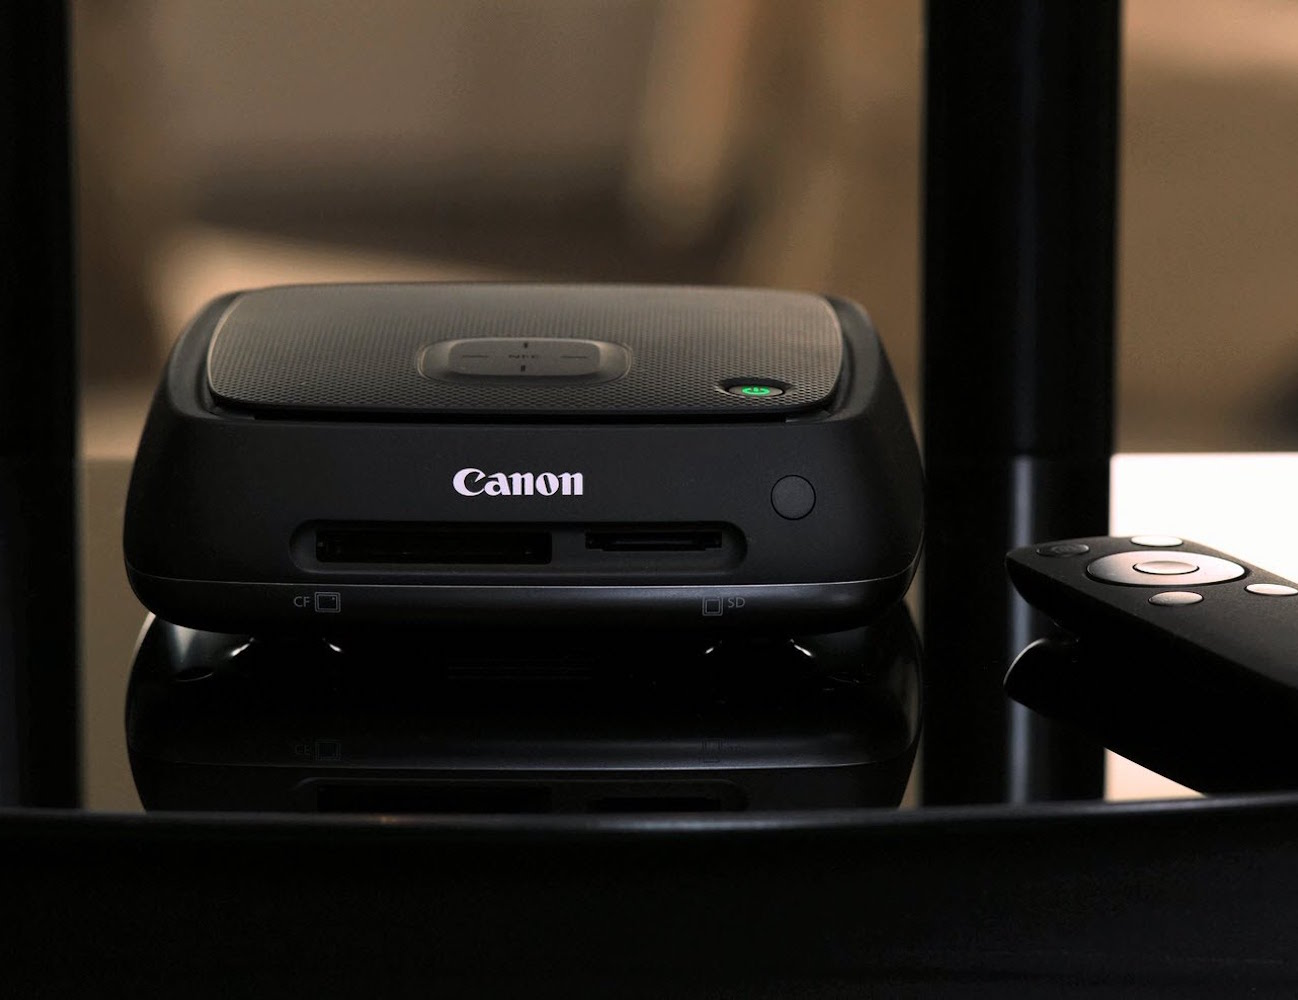 Canon Connect Station for Photo and Video Storage